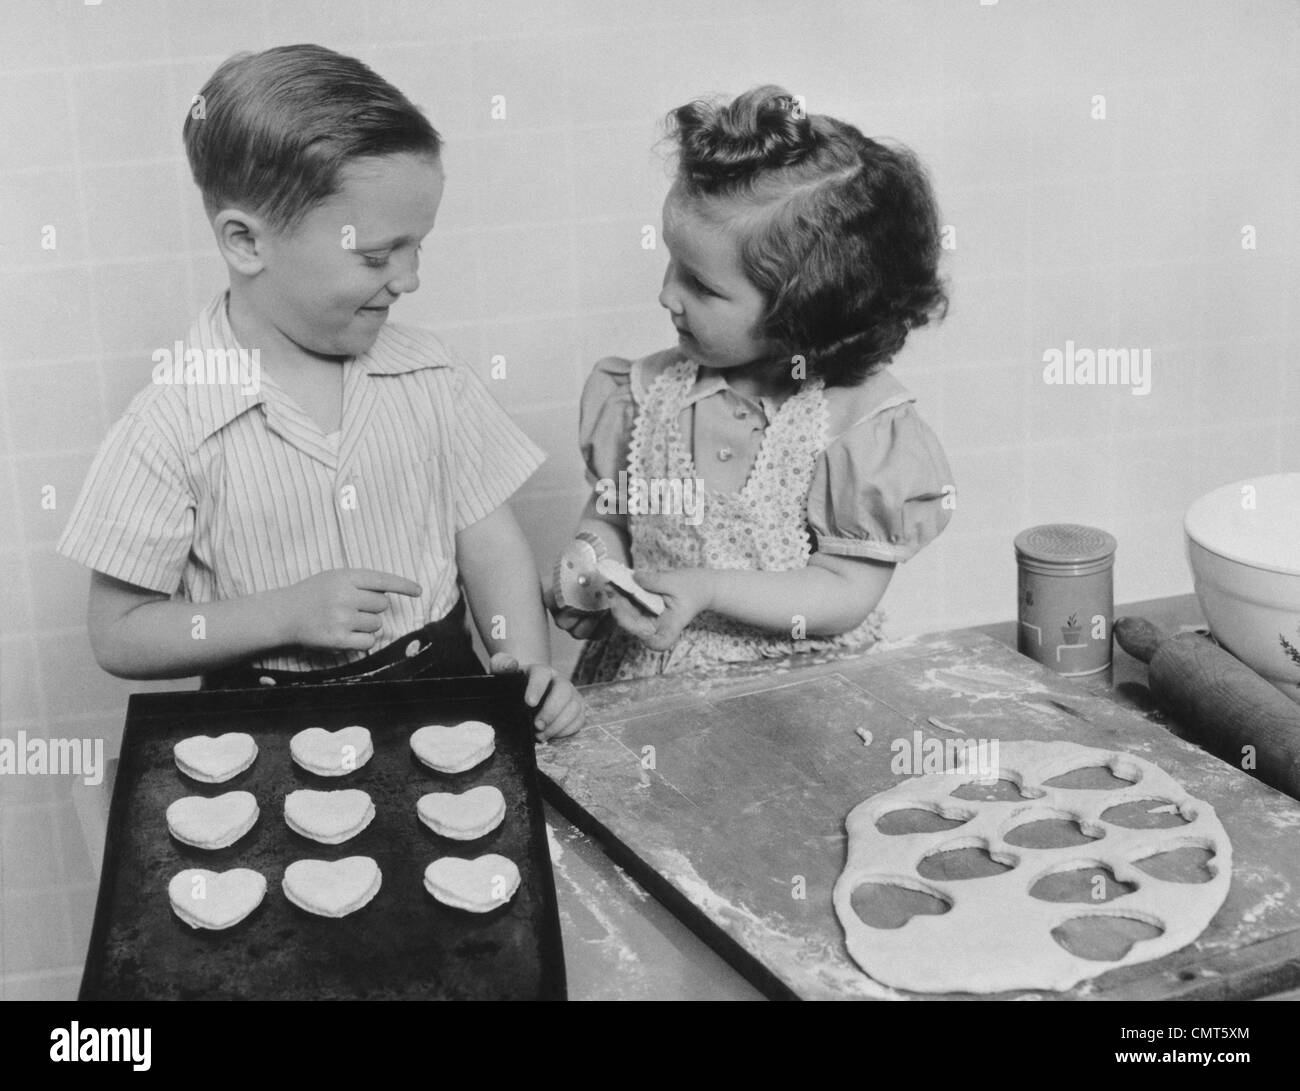 1940s YOUNG SMILING GIRL AND BOY BAKING HEART SHAPED VALENTINE COOKIES - Stock Image